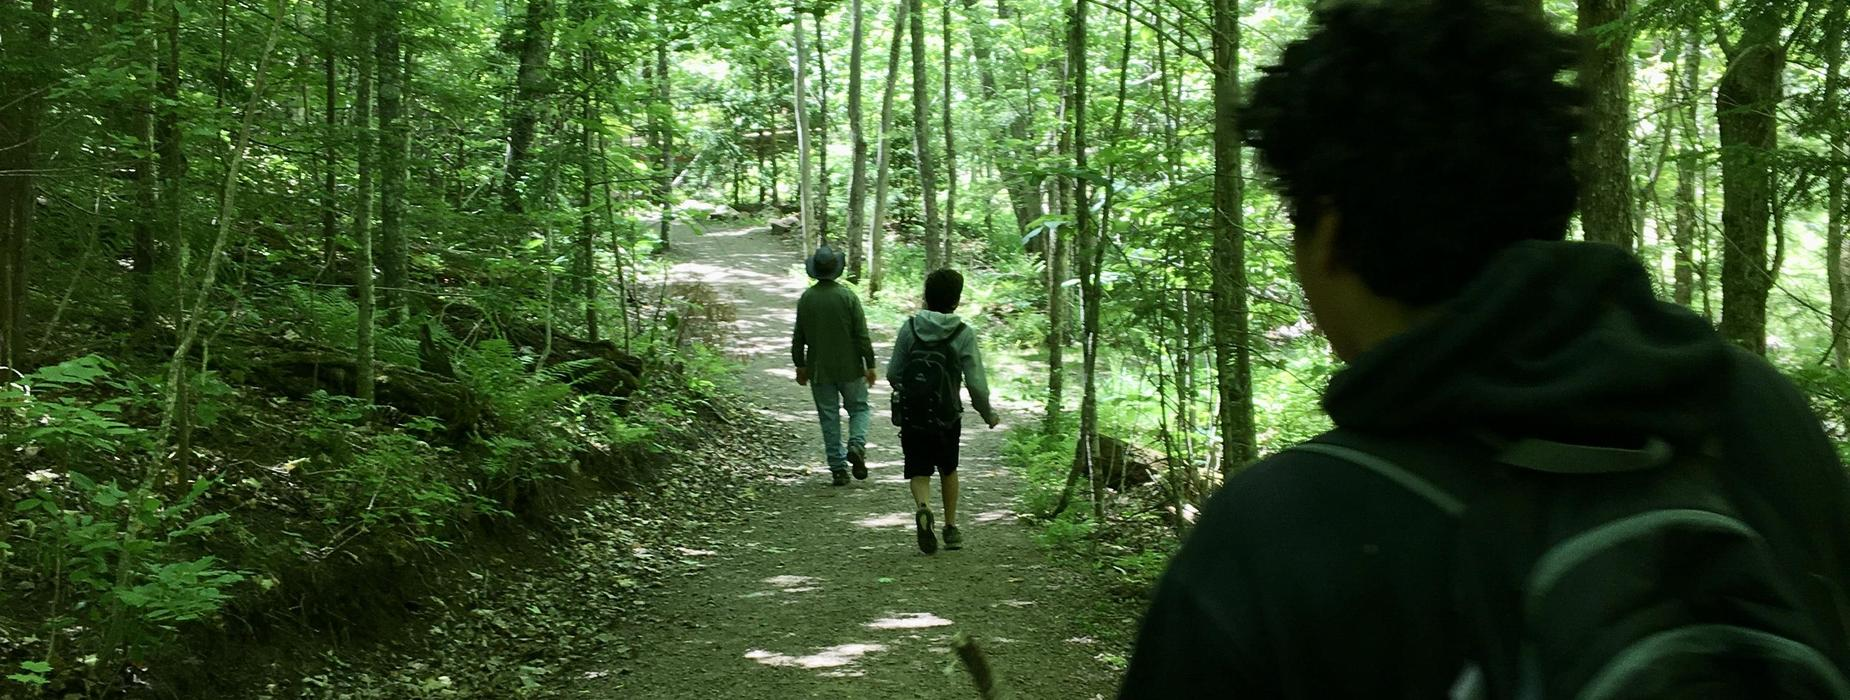 Students walking on trail in woods